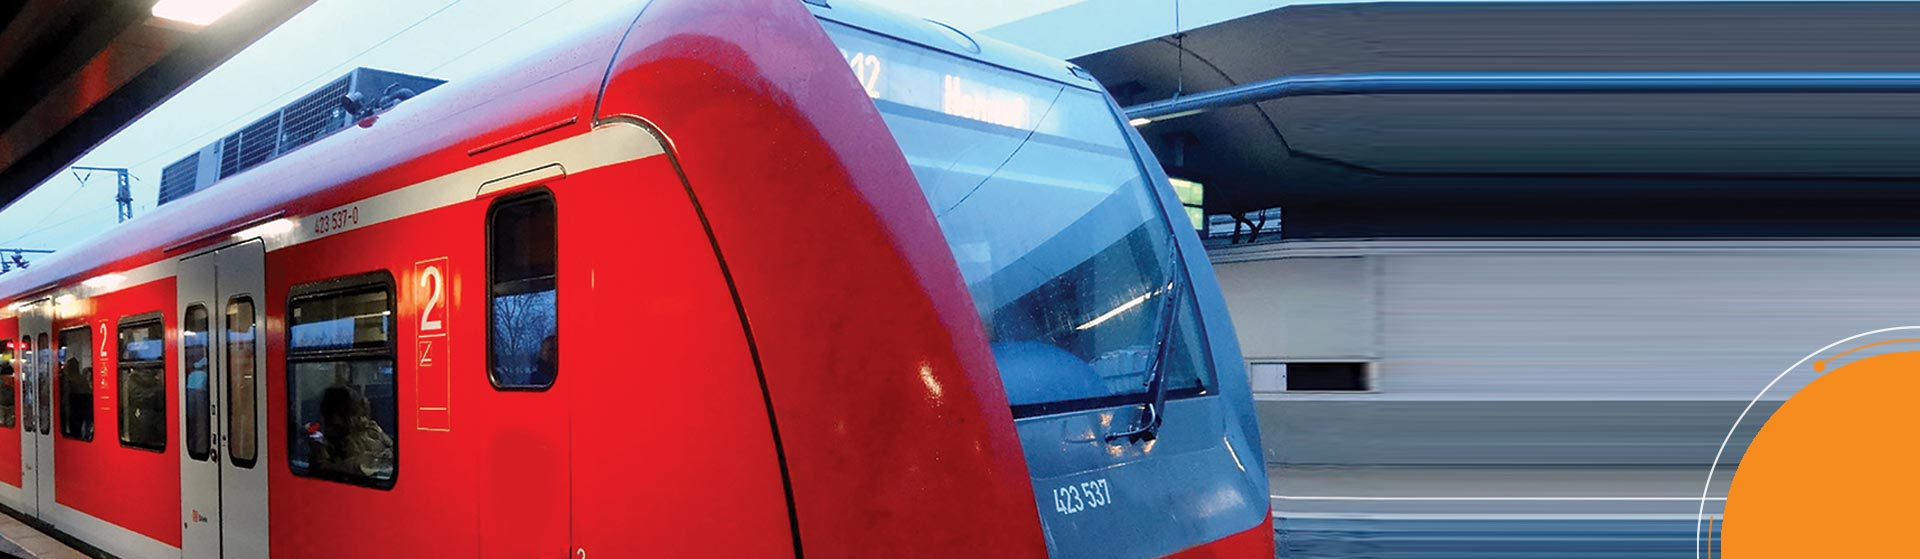 Service Integration and Management (SIAM) Support for a European high-speed Train Operator